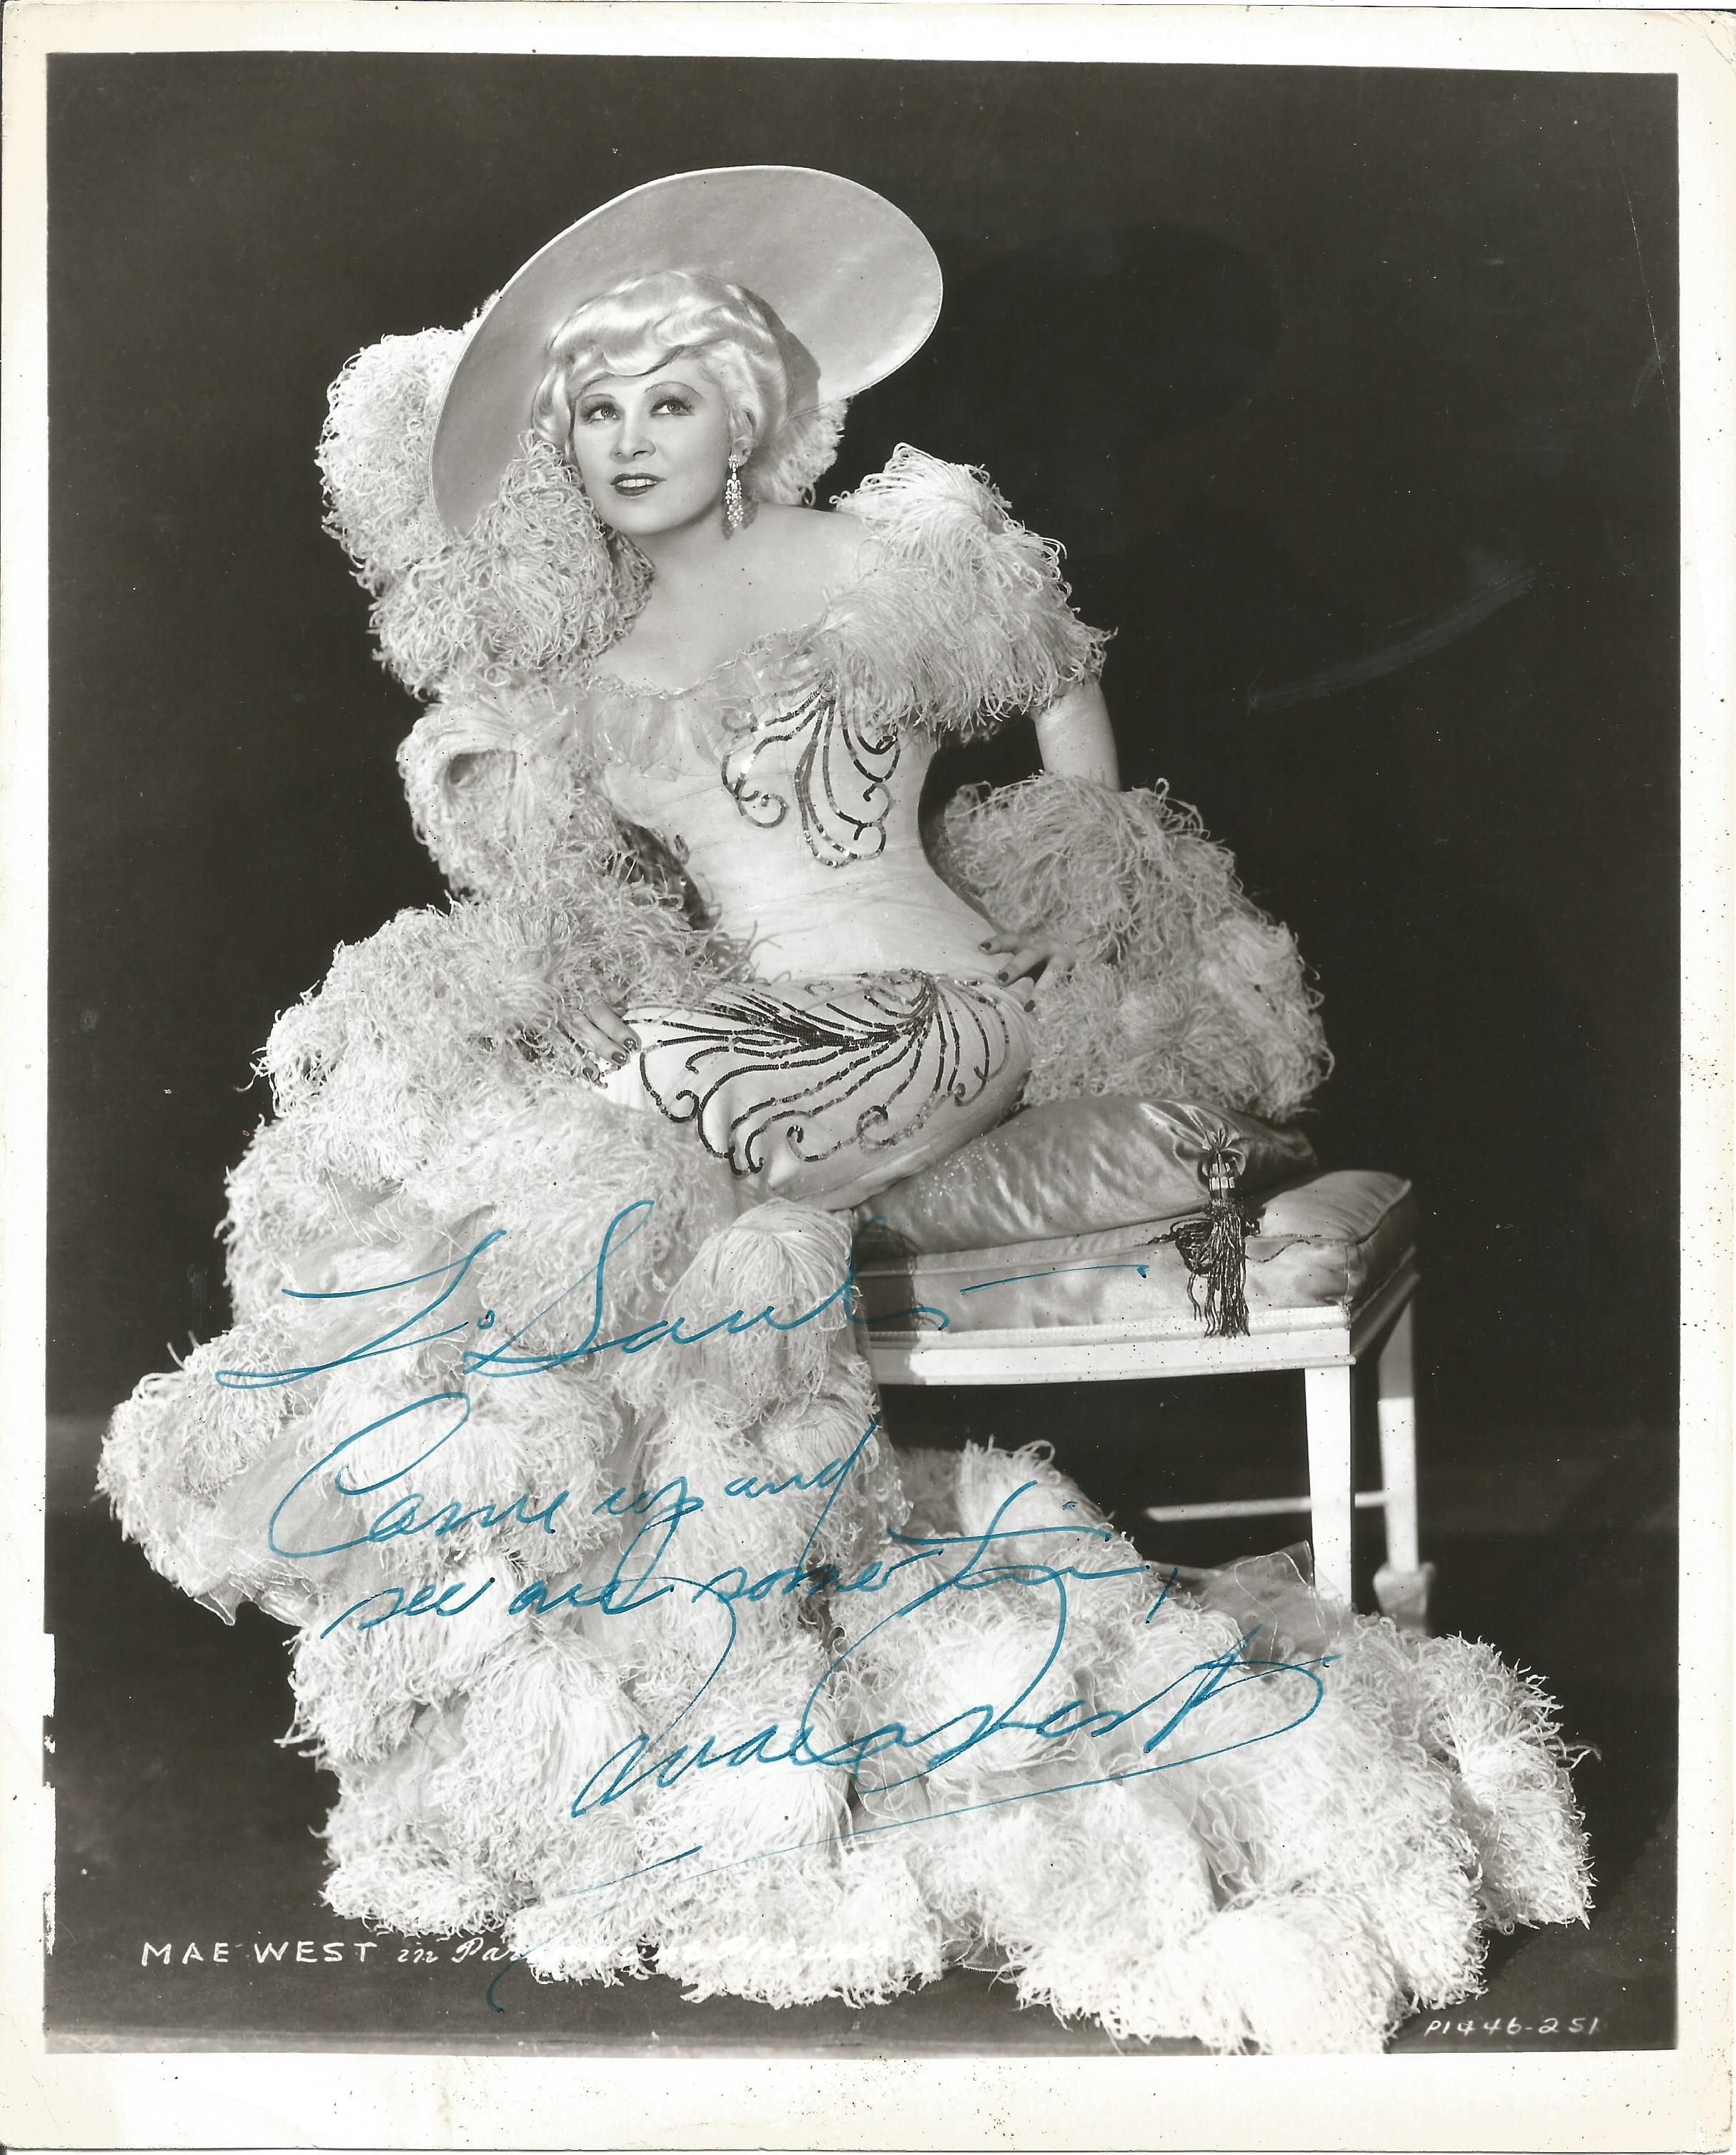 Mae West signed 10x8 black and white vintage photo. Mary Jane Mae West (August 17, 1893 - November